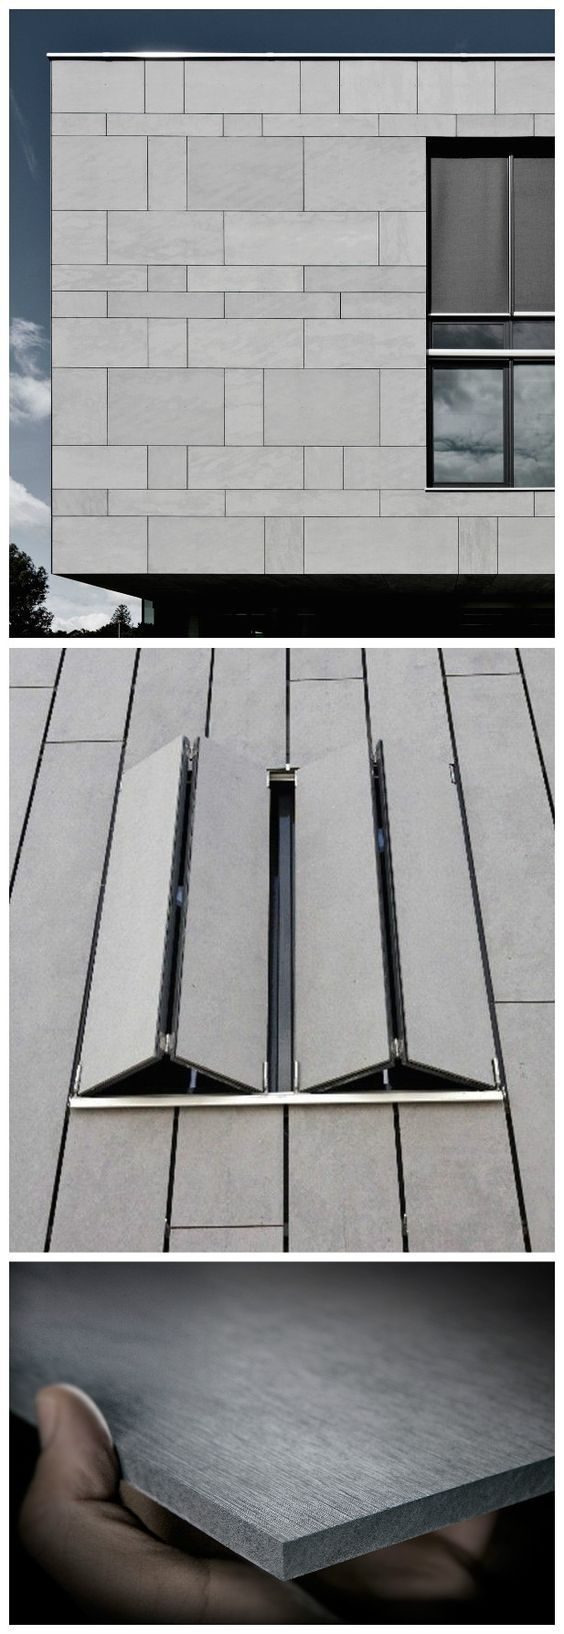 Cbf Cement Board Fabricators Residential Projects: 9 Best Fiber Cement Panels Images On Pinterest